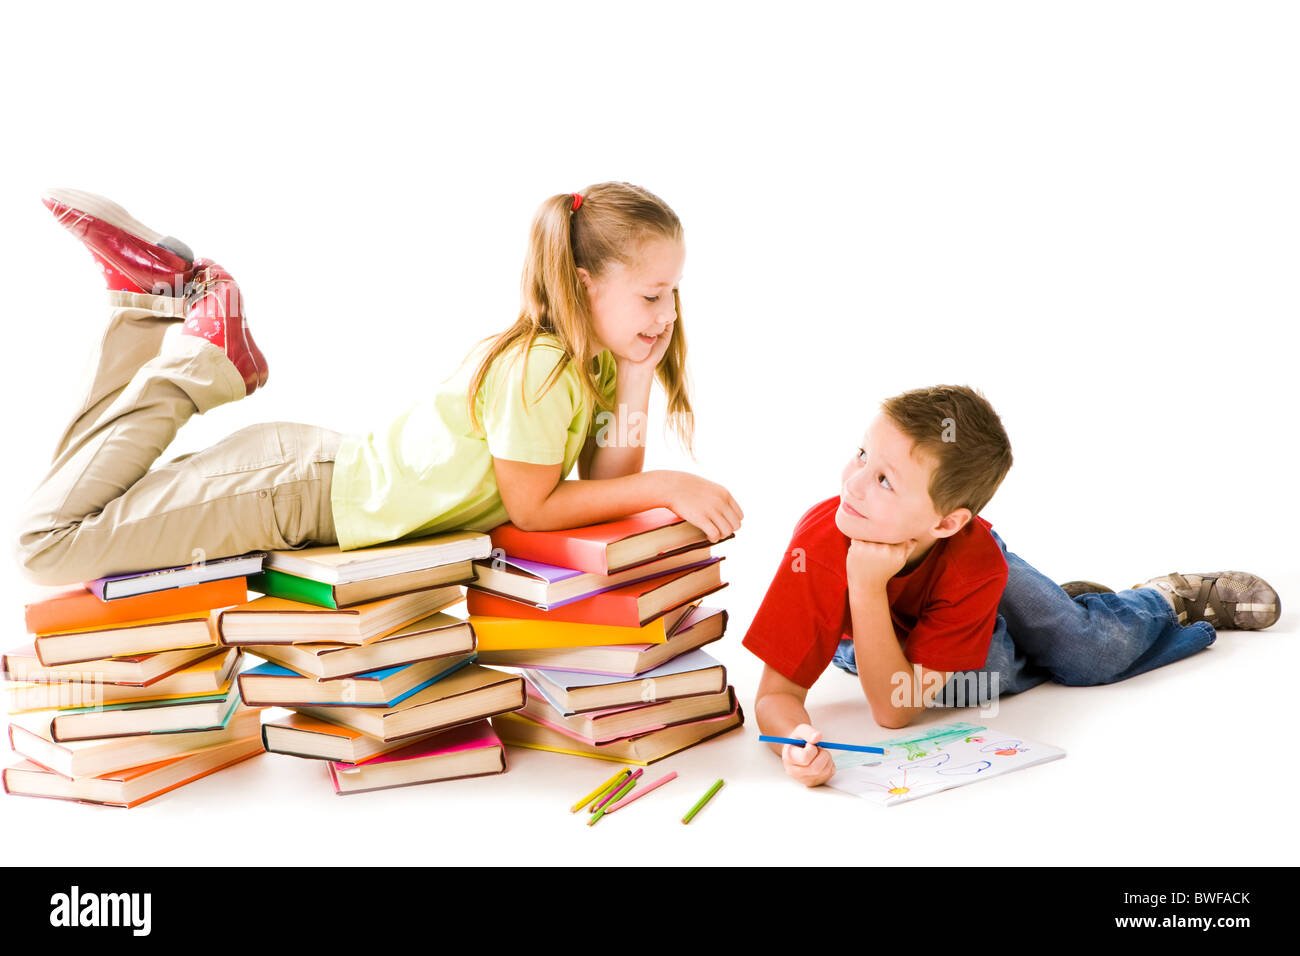 Smart girl lying on top of book piles and talking to cute schoolboy drawing near by - Stock Image